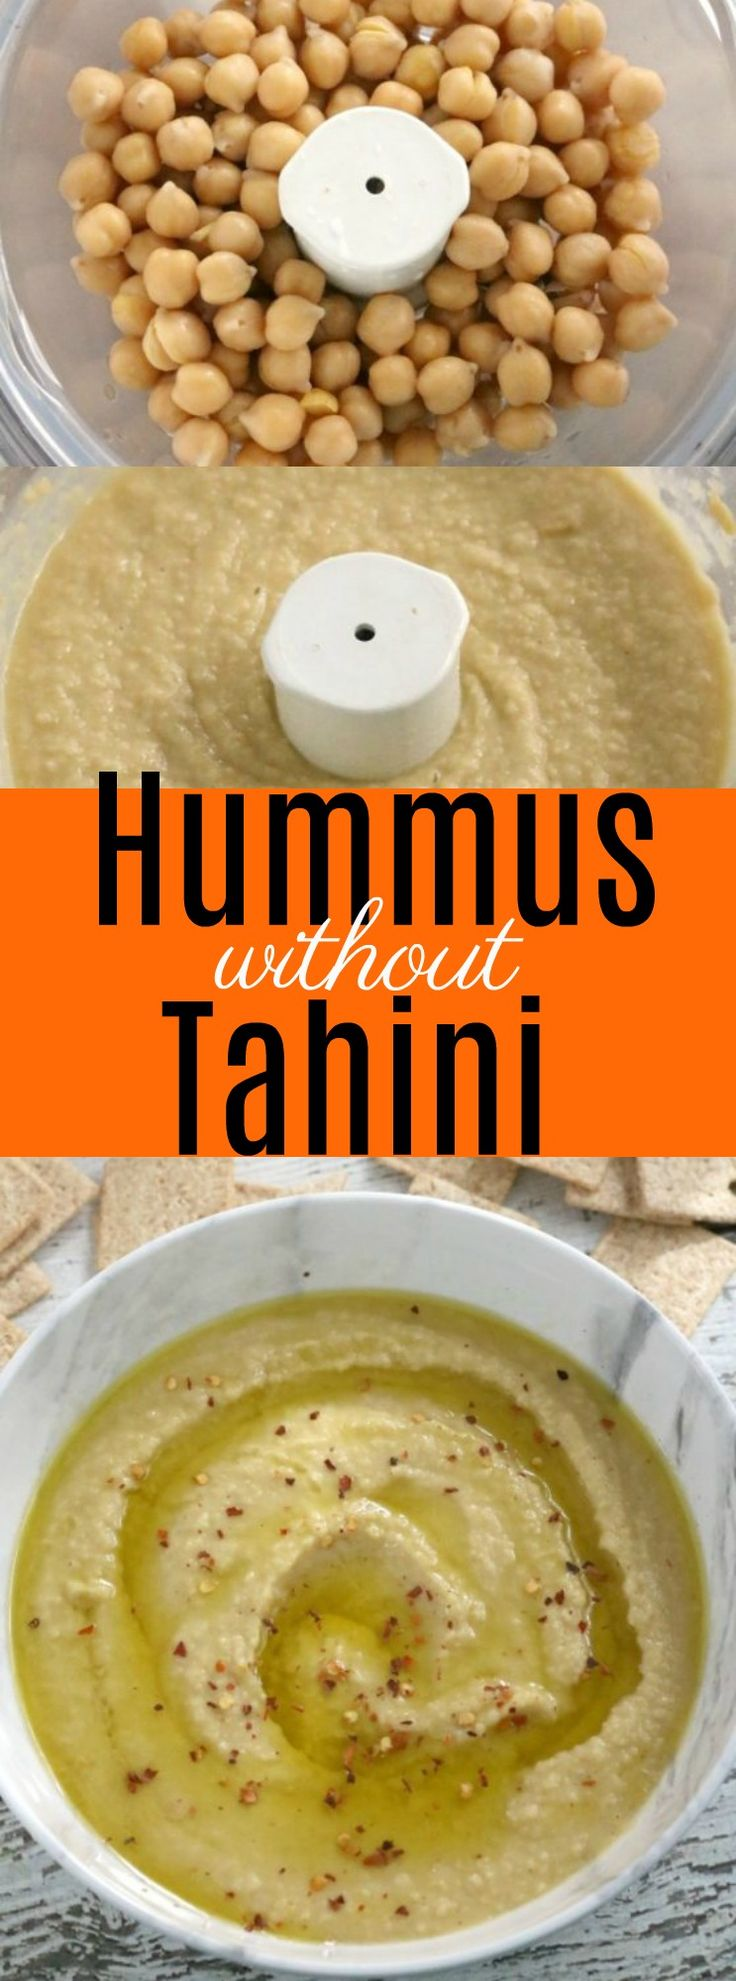 Hummus is a quick and healthy snack but can be exp…